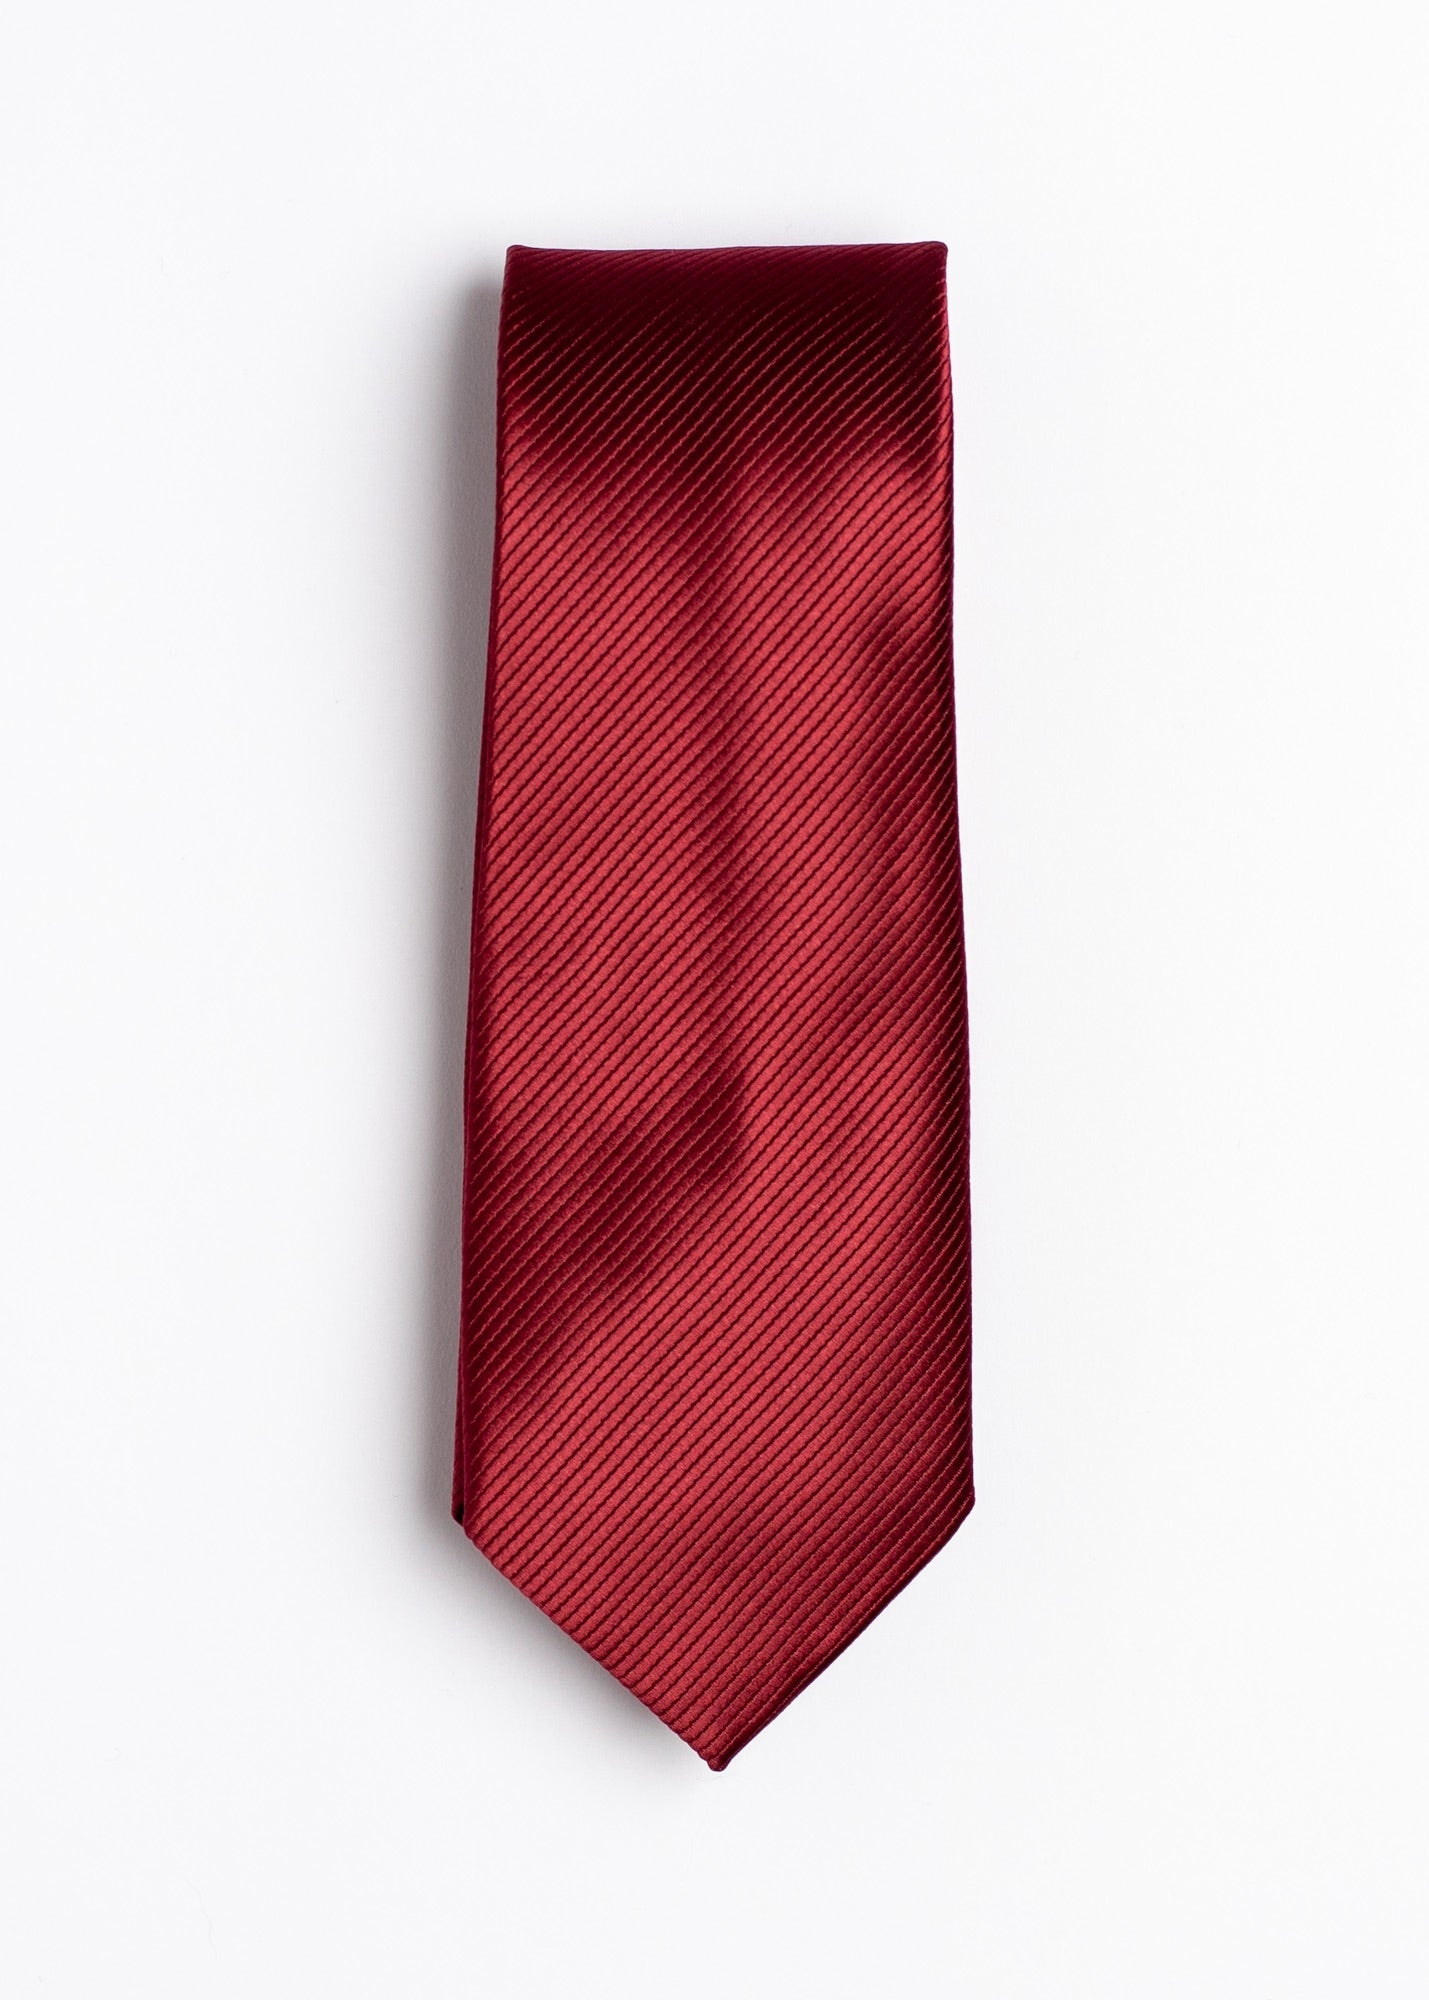 red plain pattern tie - Oxford Square